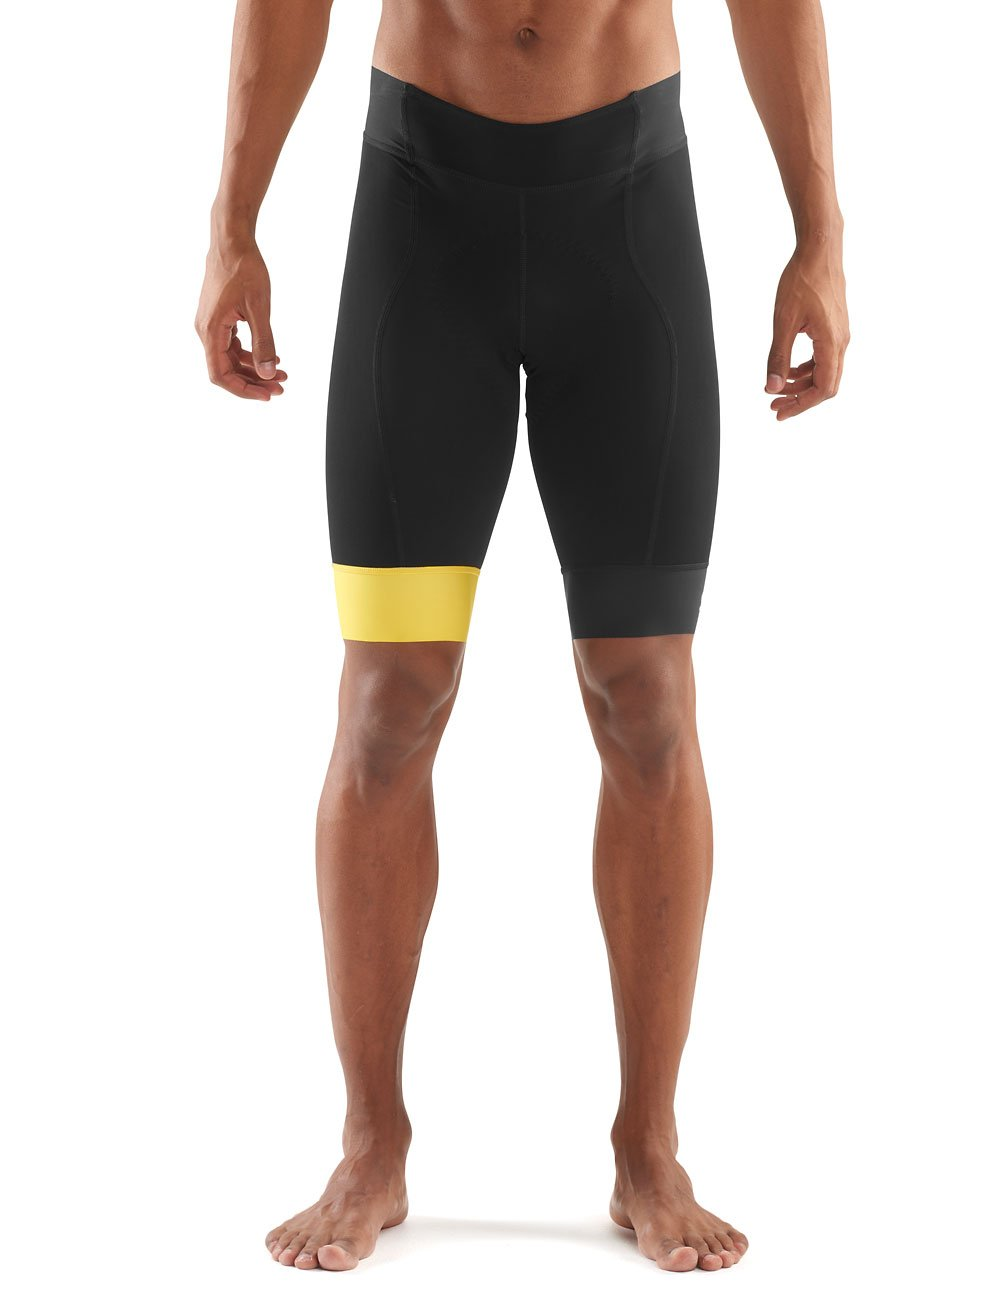 Skins Herren Dynamic Cycle Kompression 1/2 Strumpfhosen/Shorts